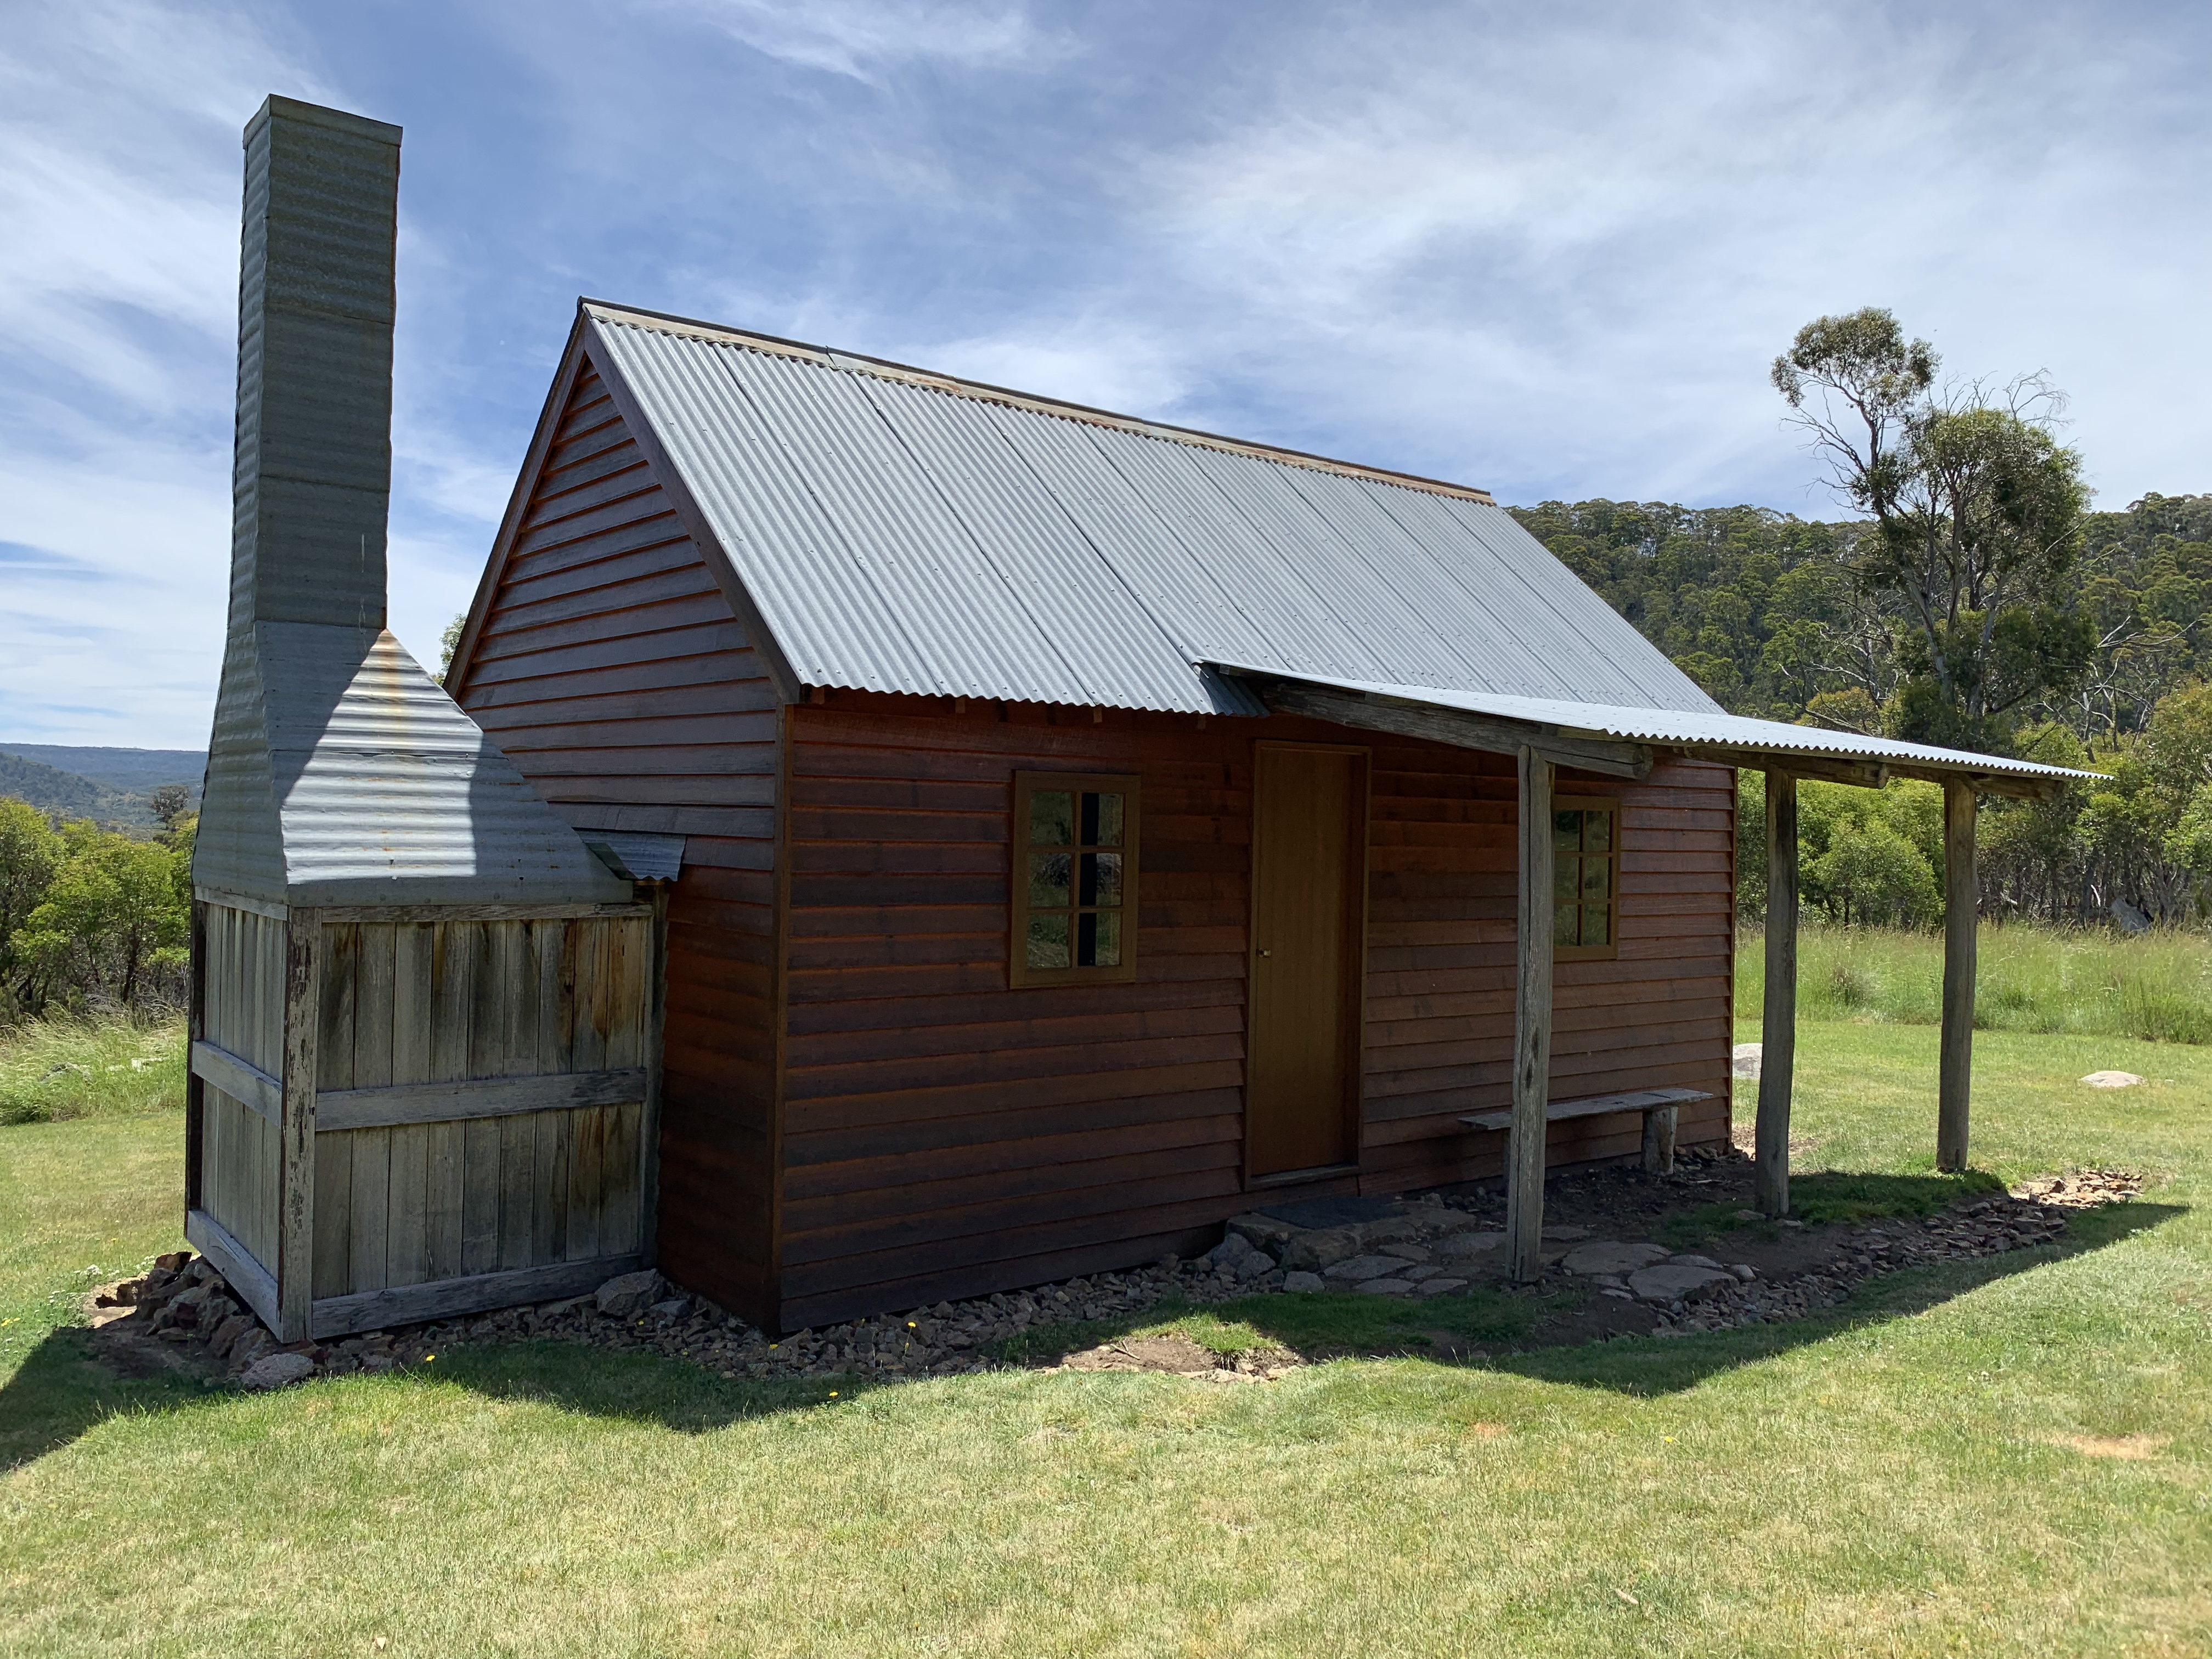 Delaneys Hut - Kosciuszko National Park.